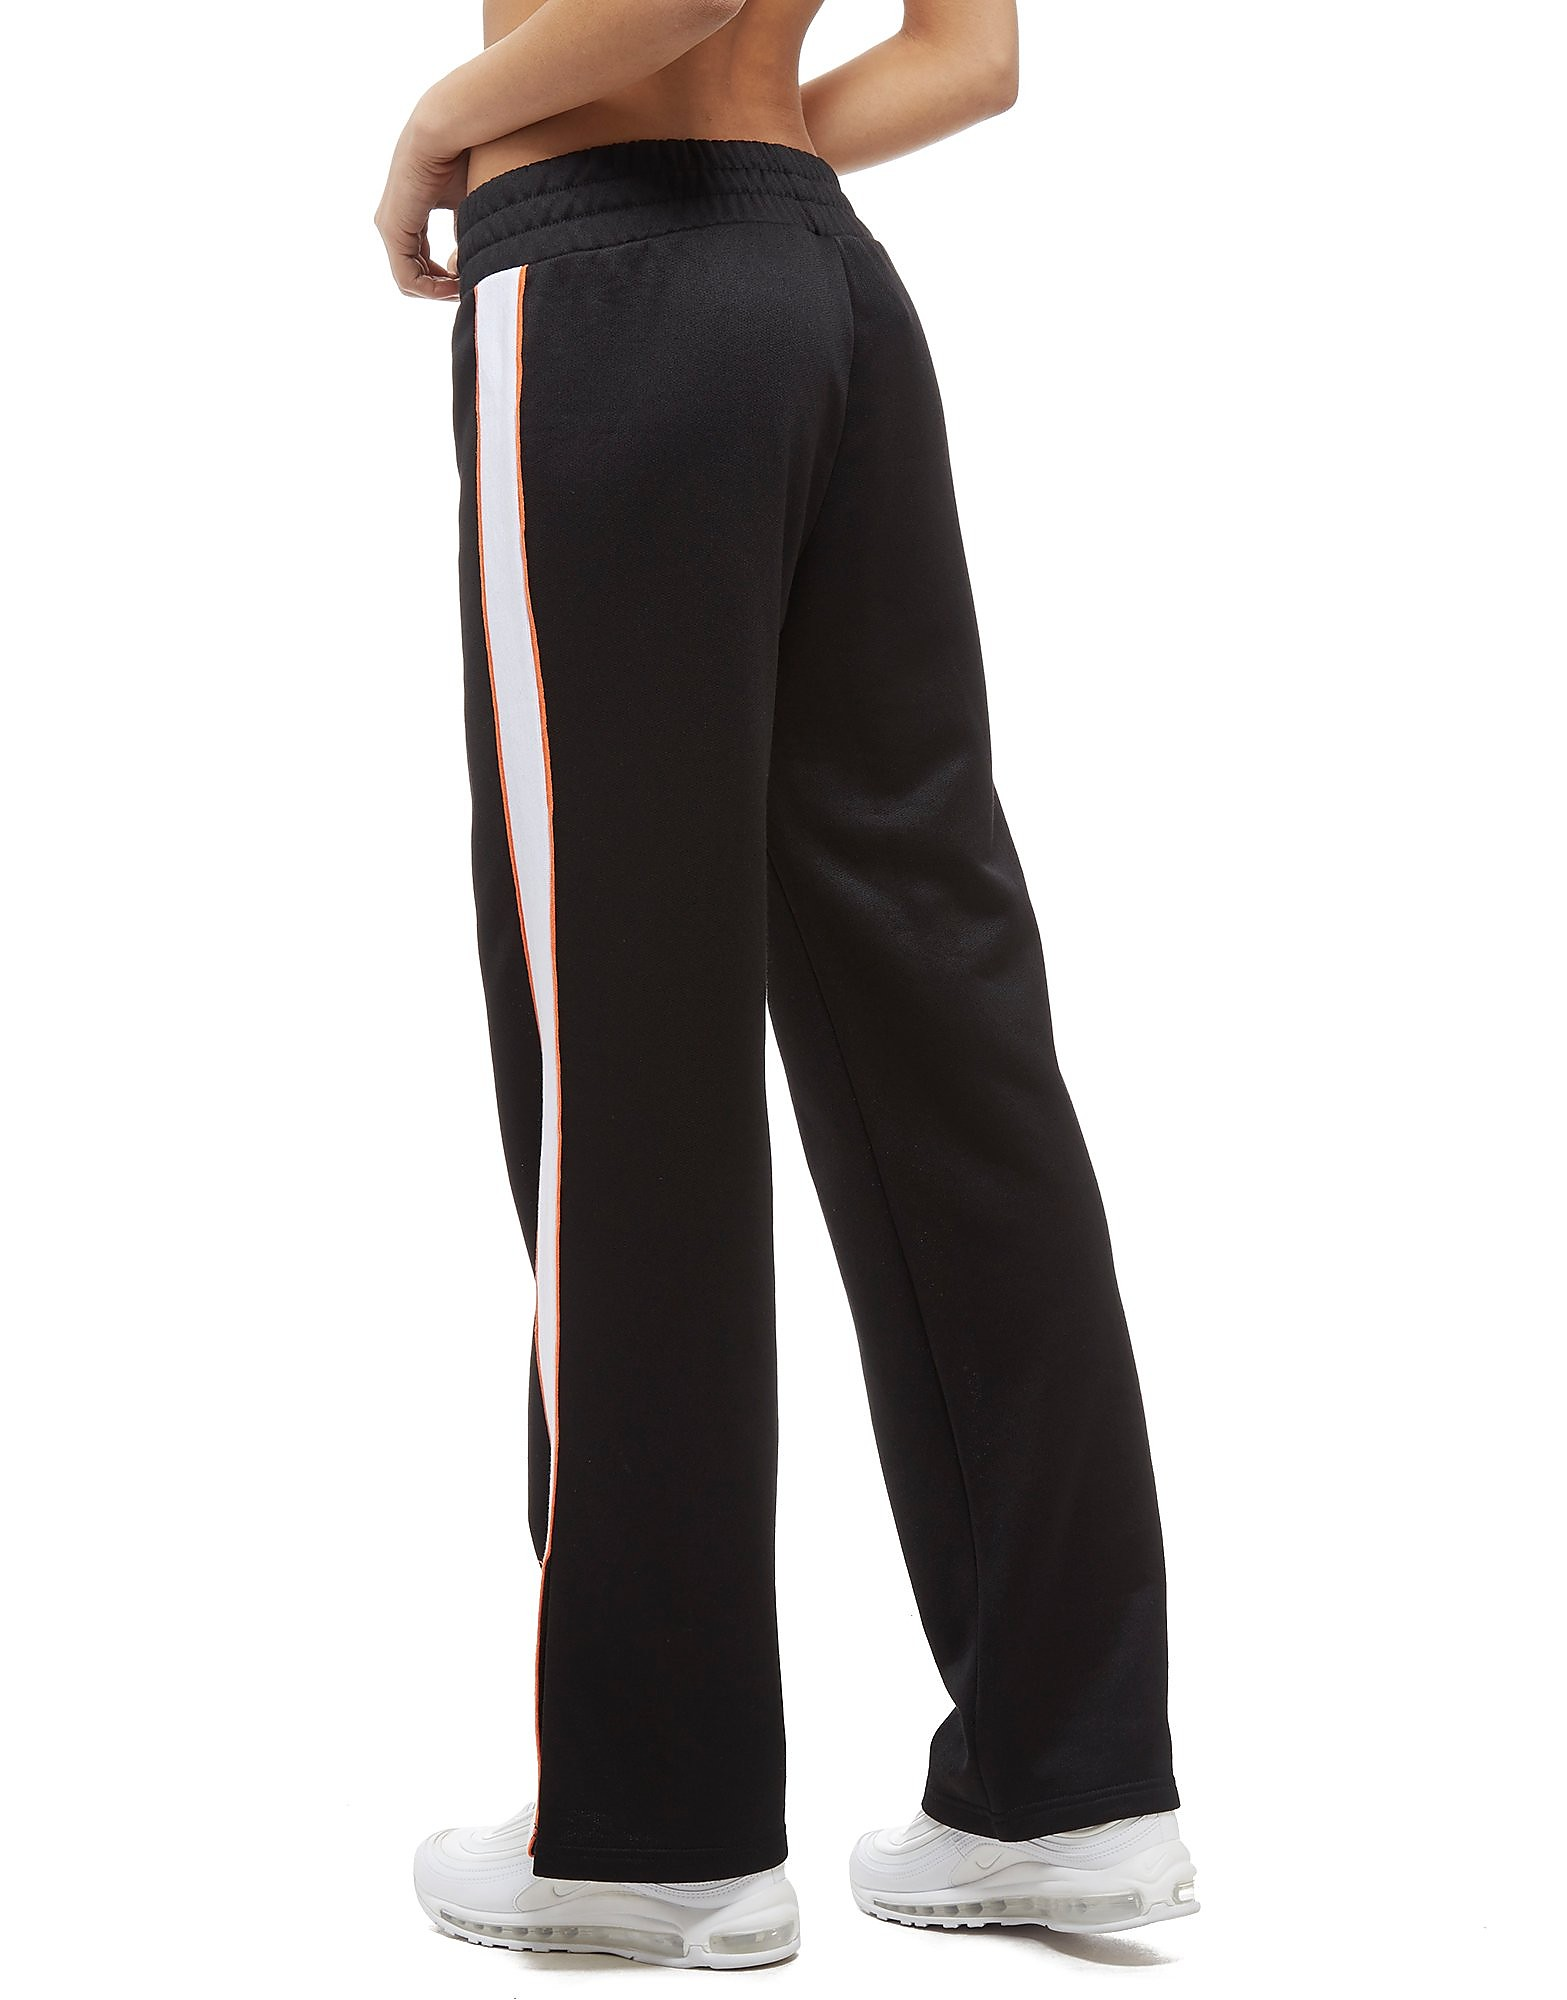 Juicy by Juicy Couture Wide Leg Pantaloni Donna